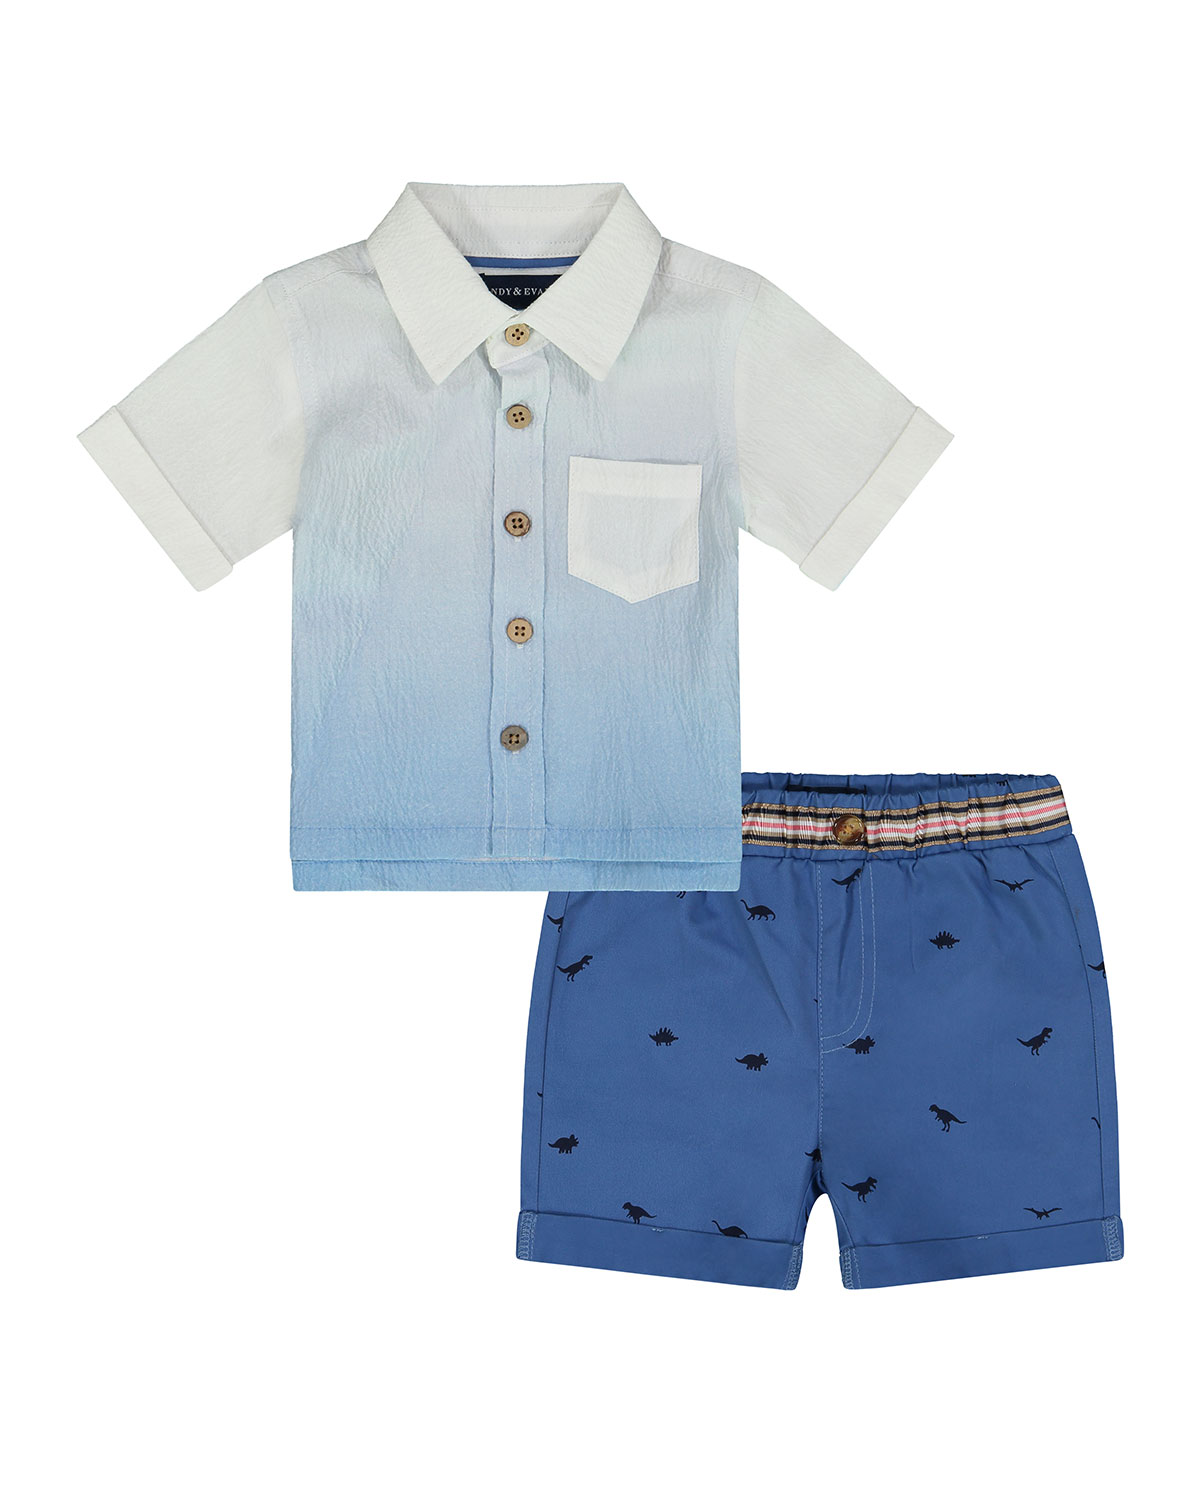 Boy's Ombre Button-Down Shirt w/ Printed Shorts